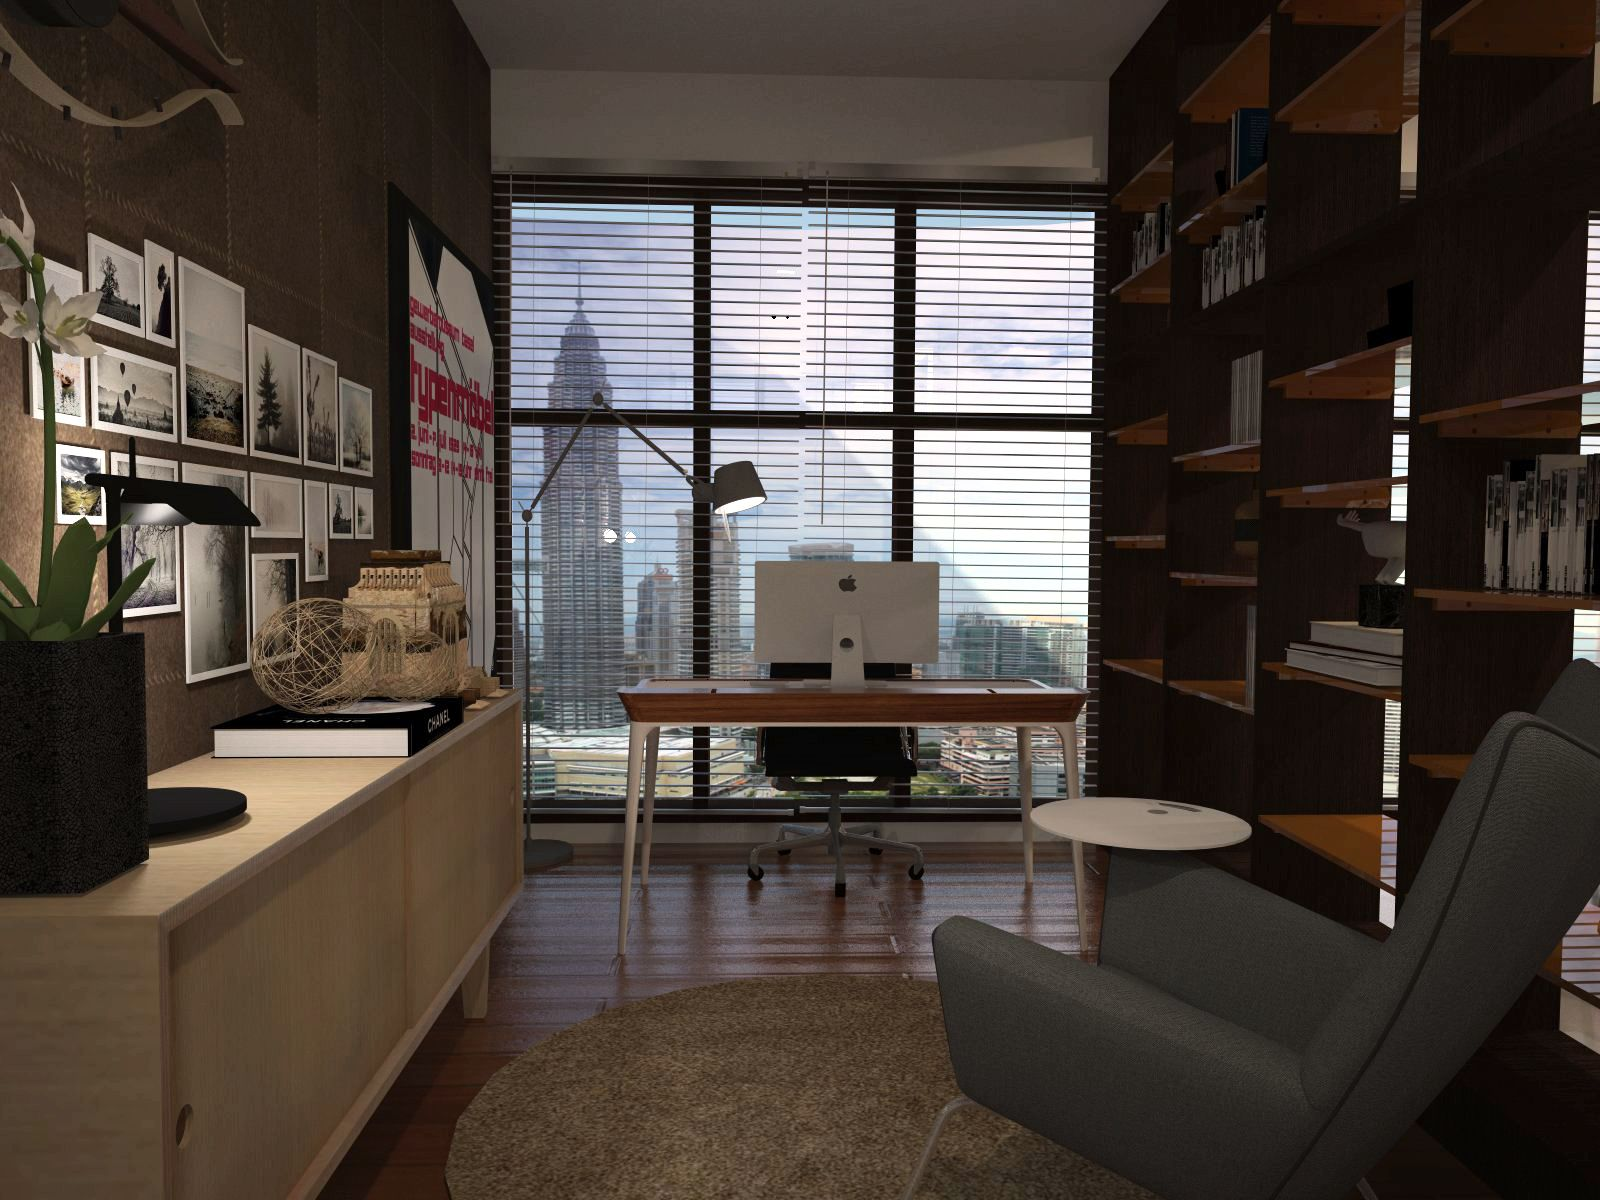 Study room at setia sky residences 3d visualization interior design ssphere - Study room interior design ...